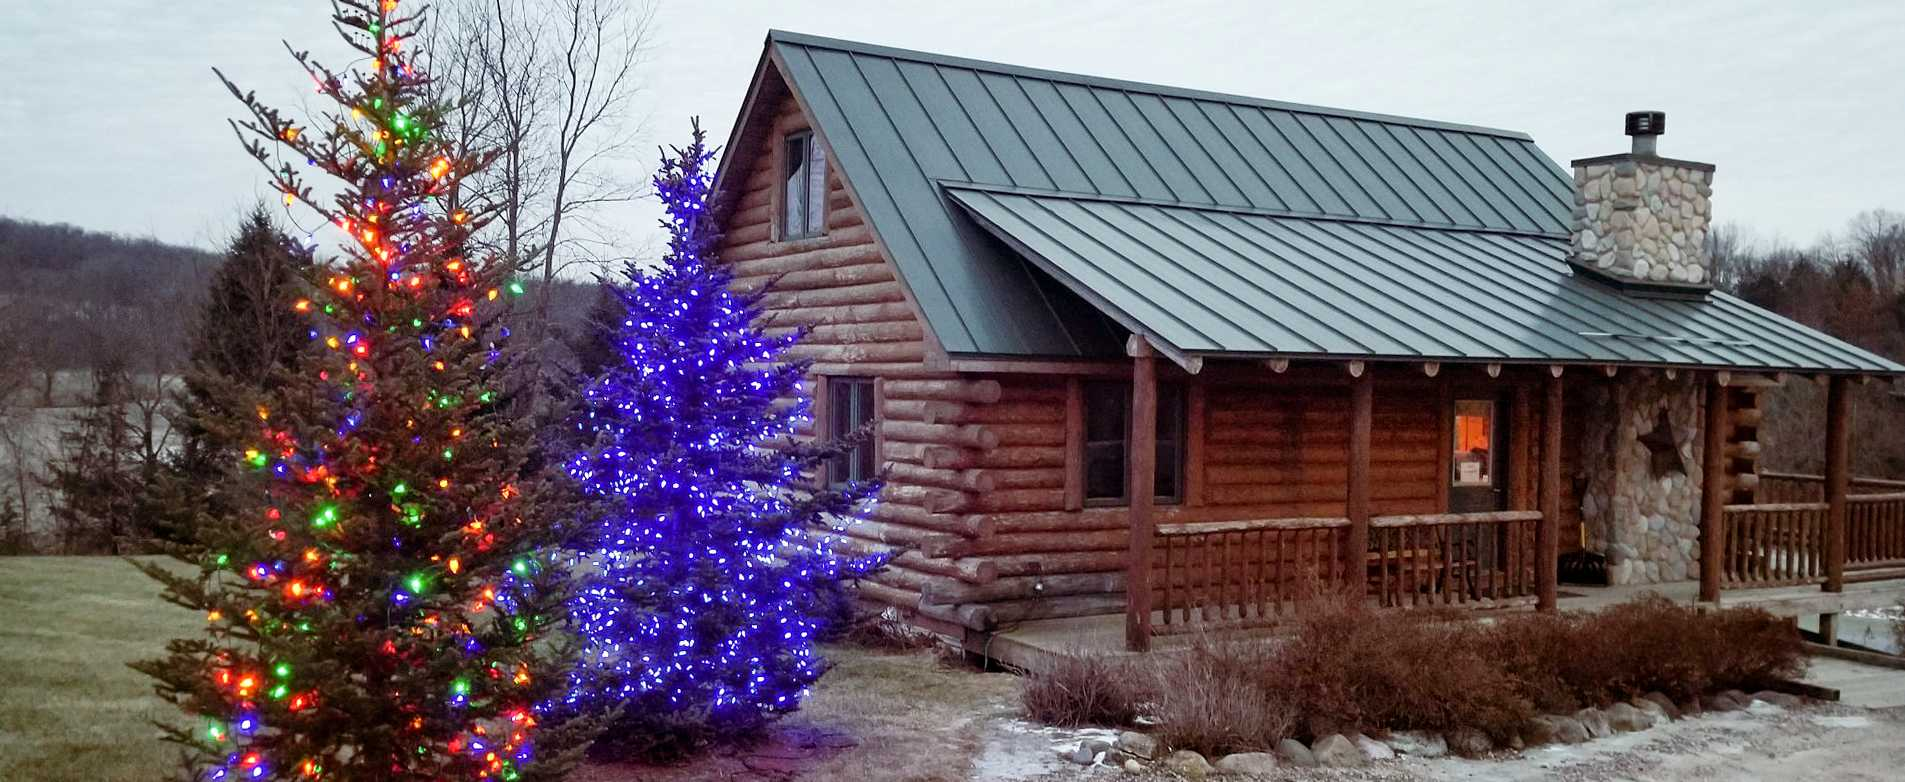 Cabin at Rustic Ridge Resort with Holiday Lights Up